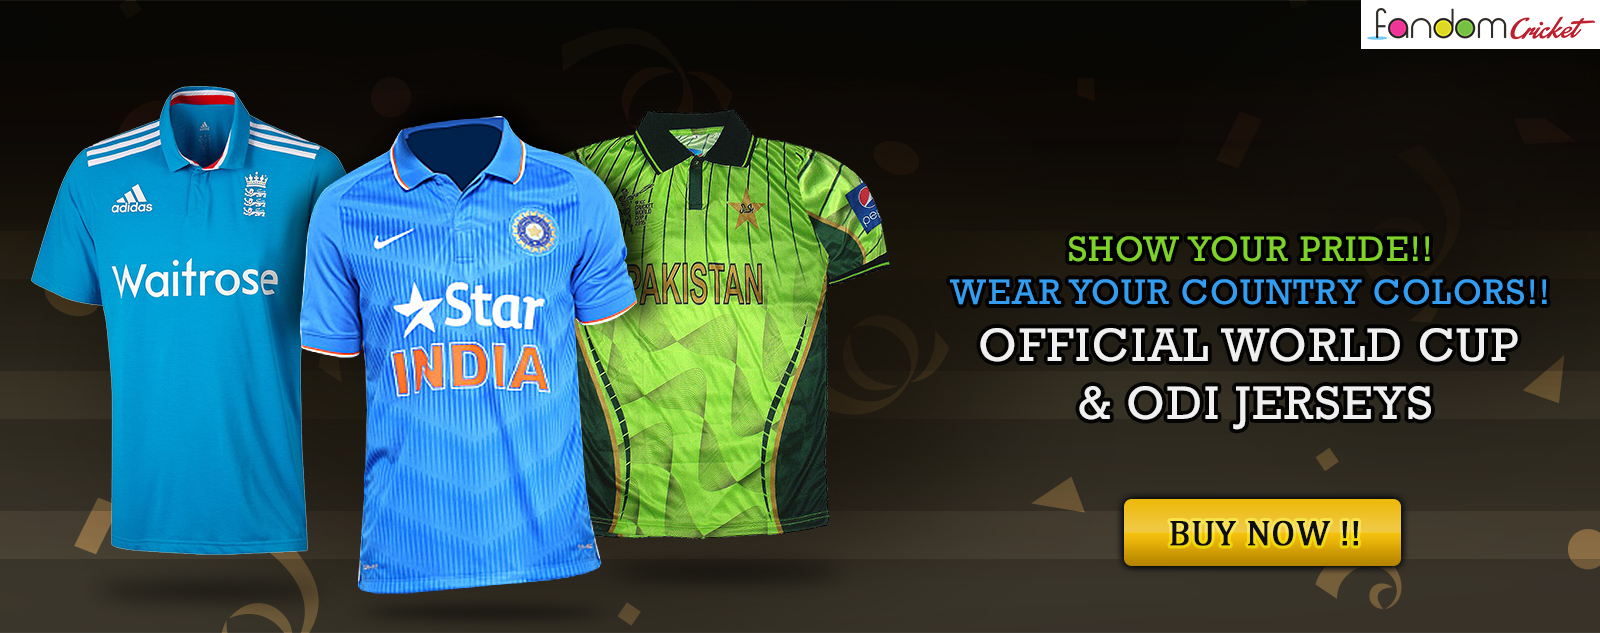 www.FandomCricket.com - Team India Cricket Jerseys